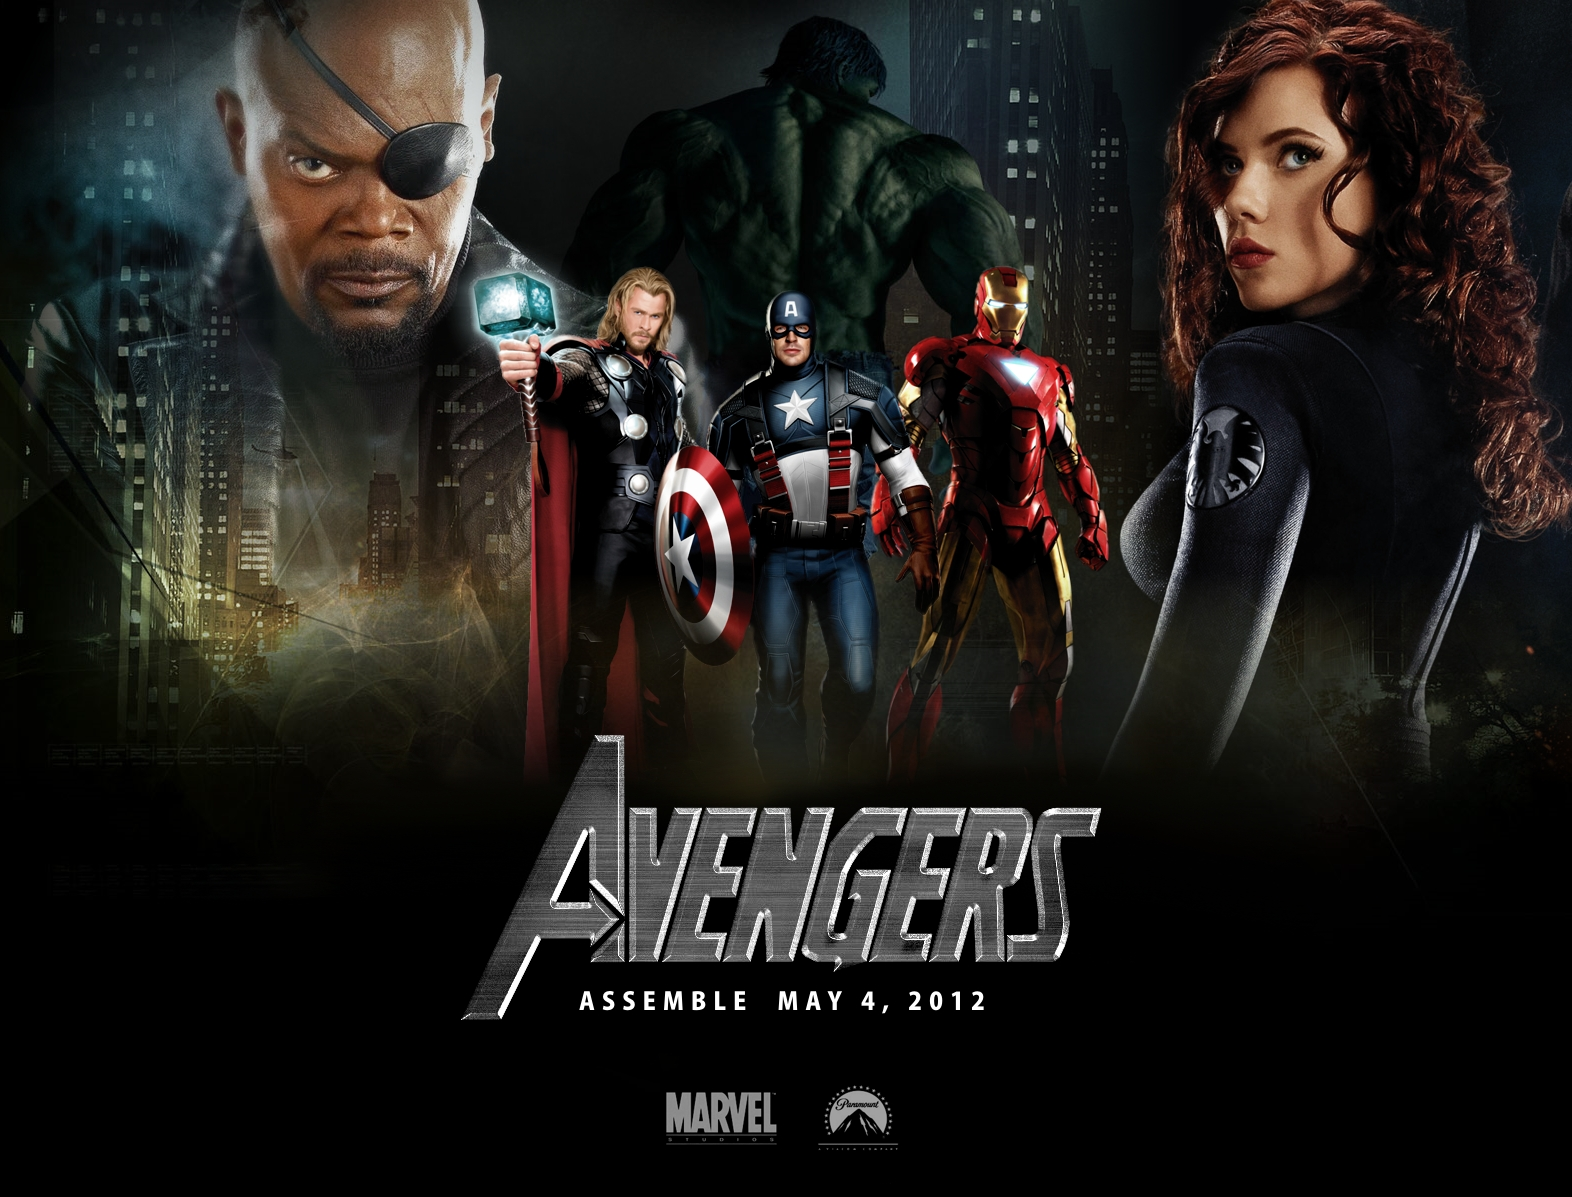 The Avengers (2012) movie